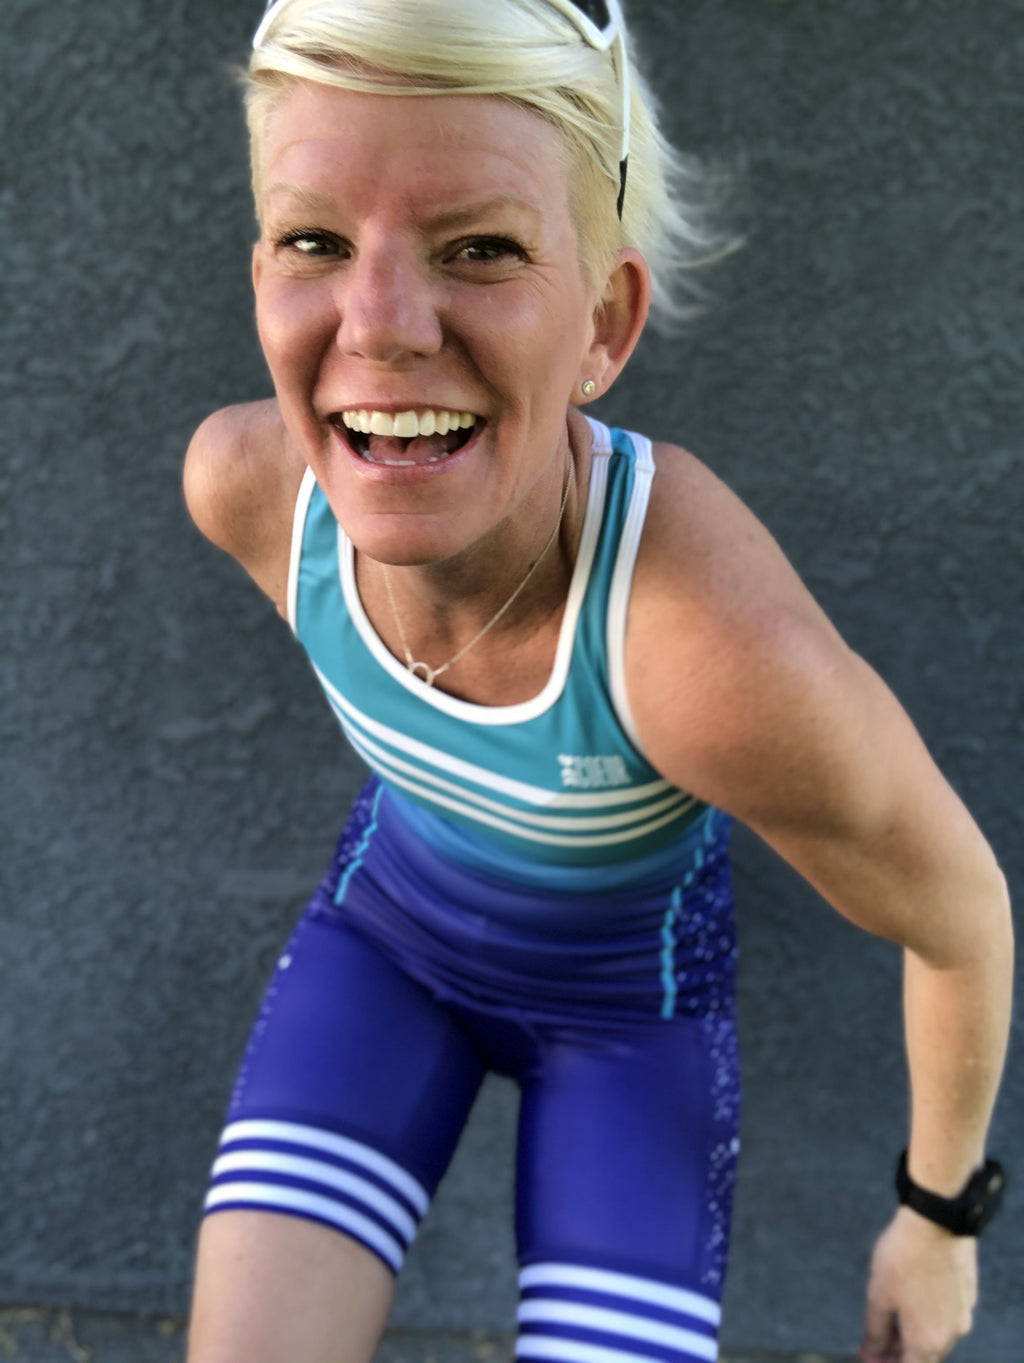 Lifestyle image of woman wearing a blue triathlon tank top